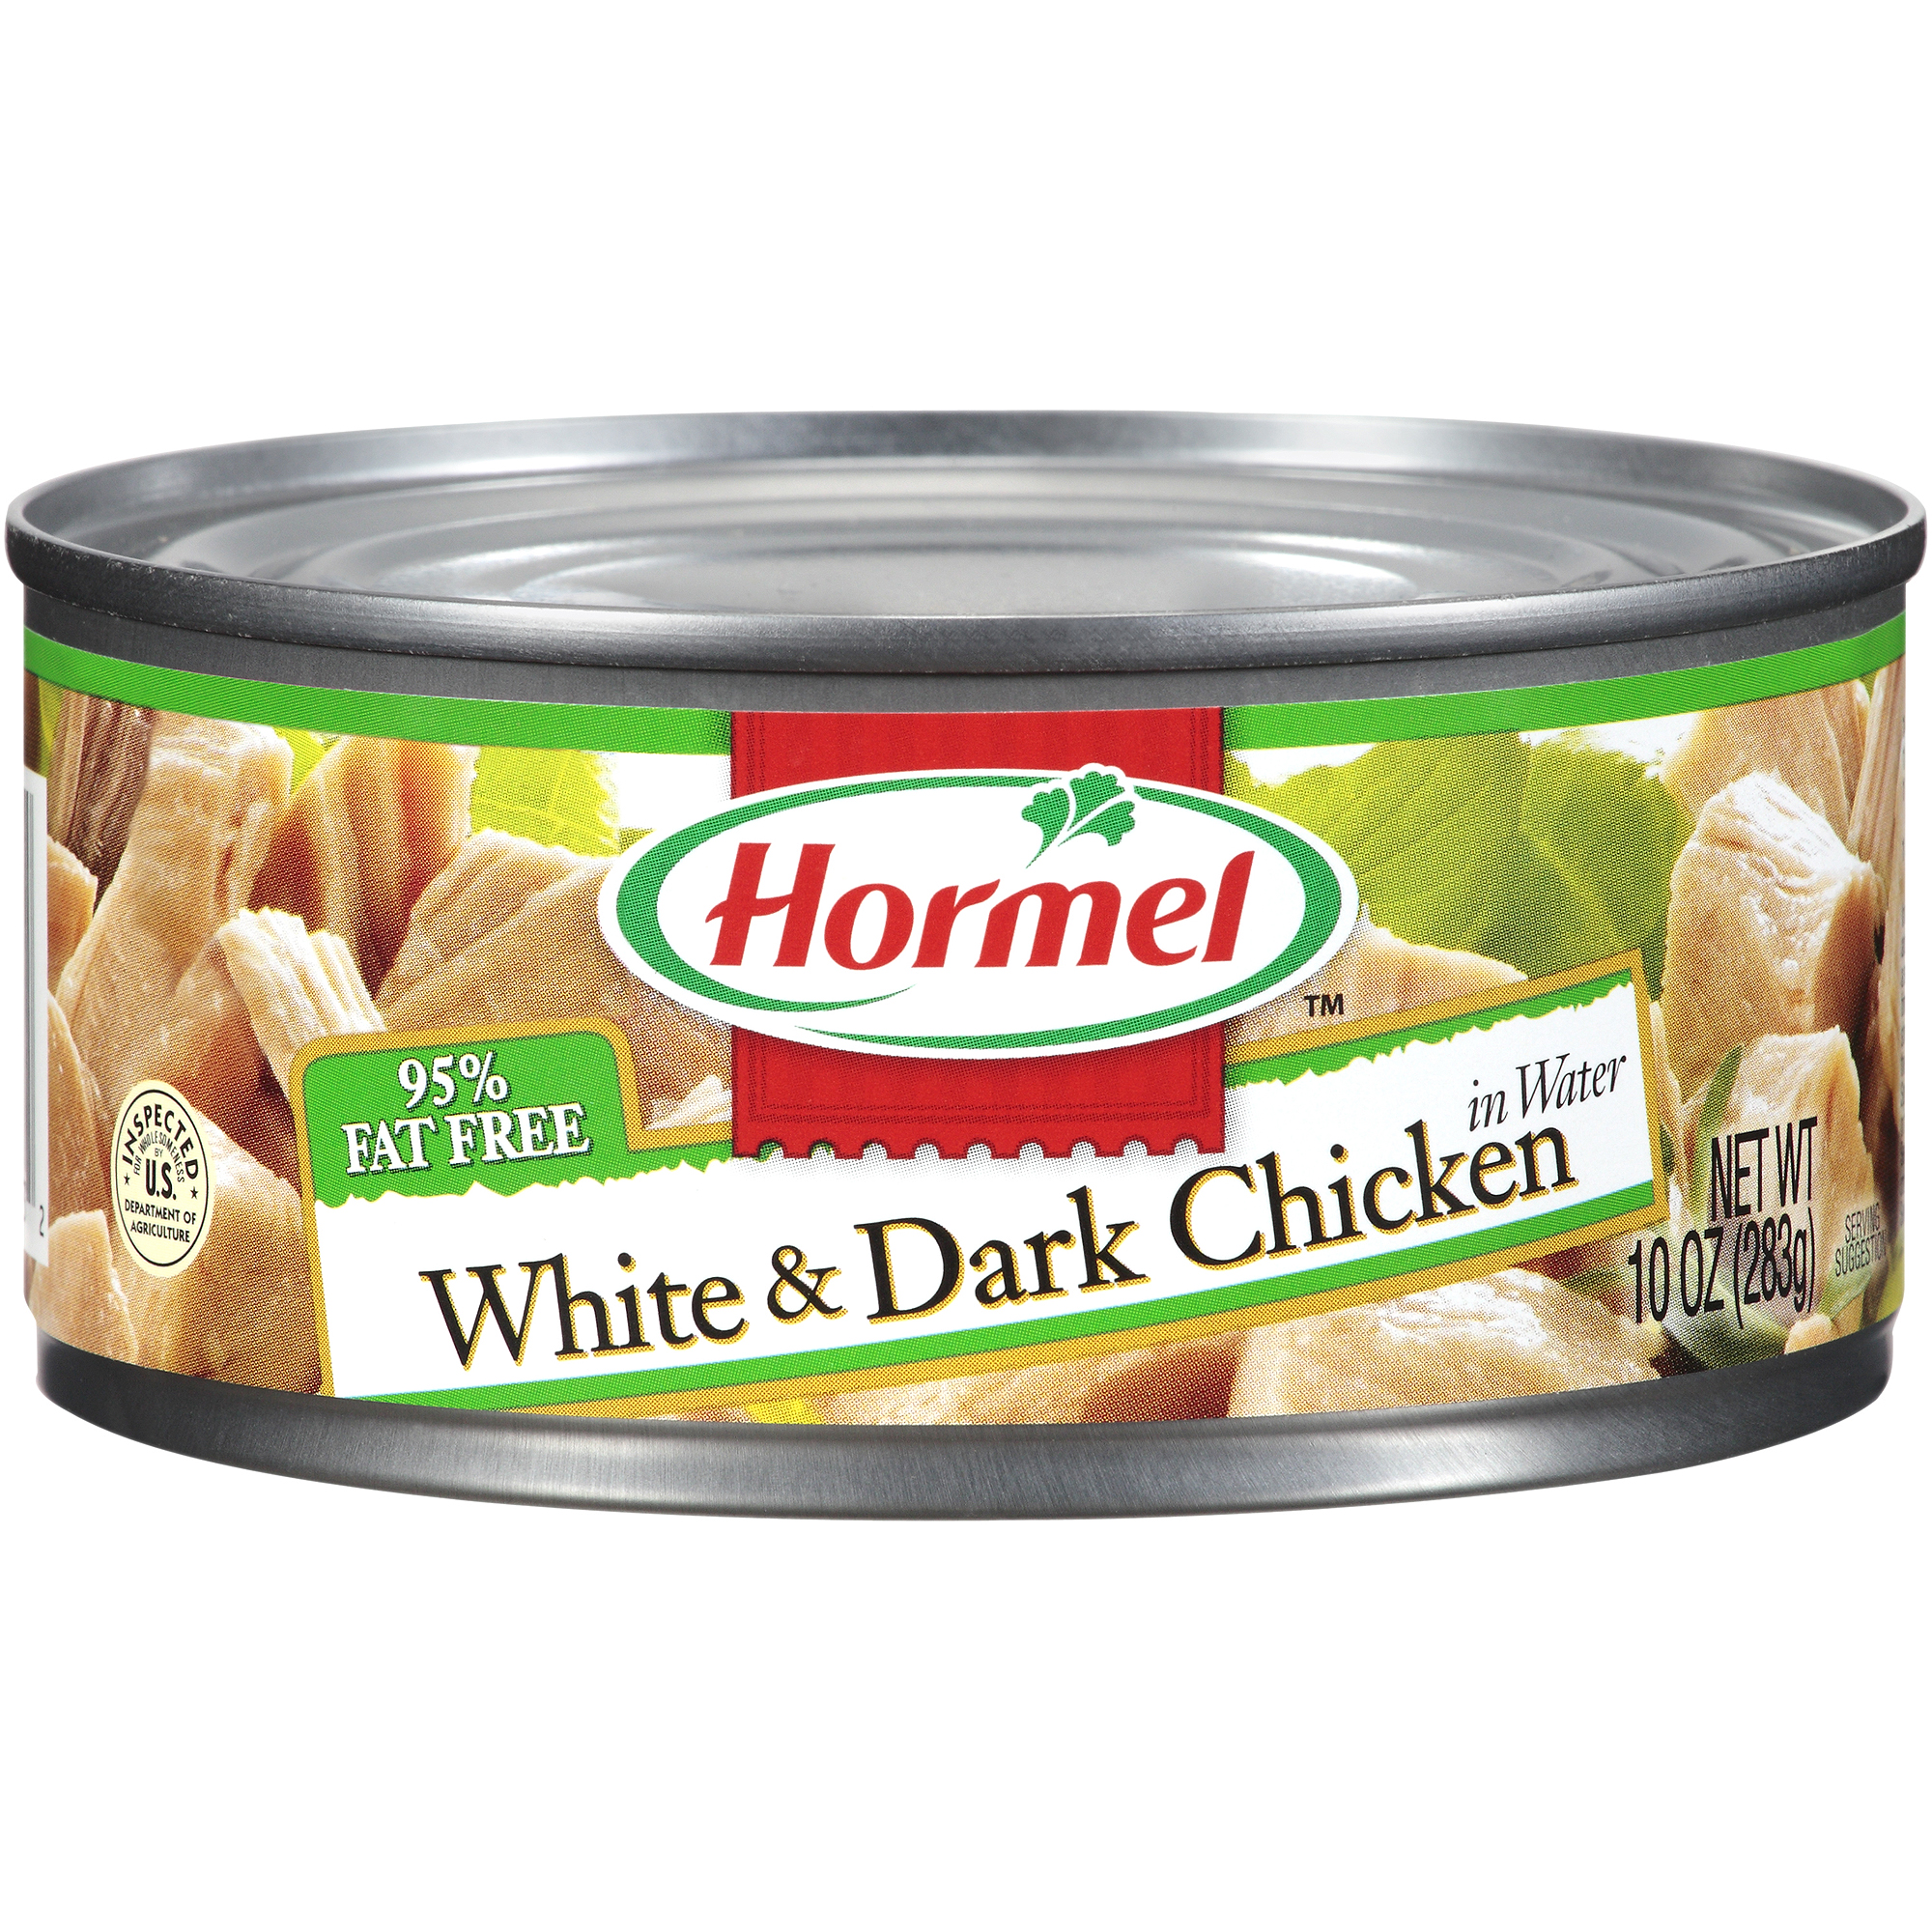 Hormel: Chunk In Water 95% Fat Free Chicken, 10 Oz